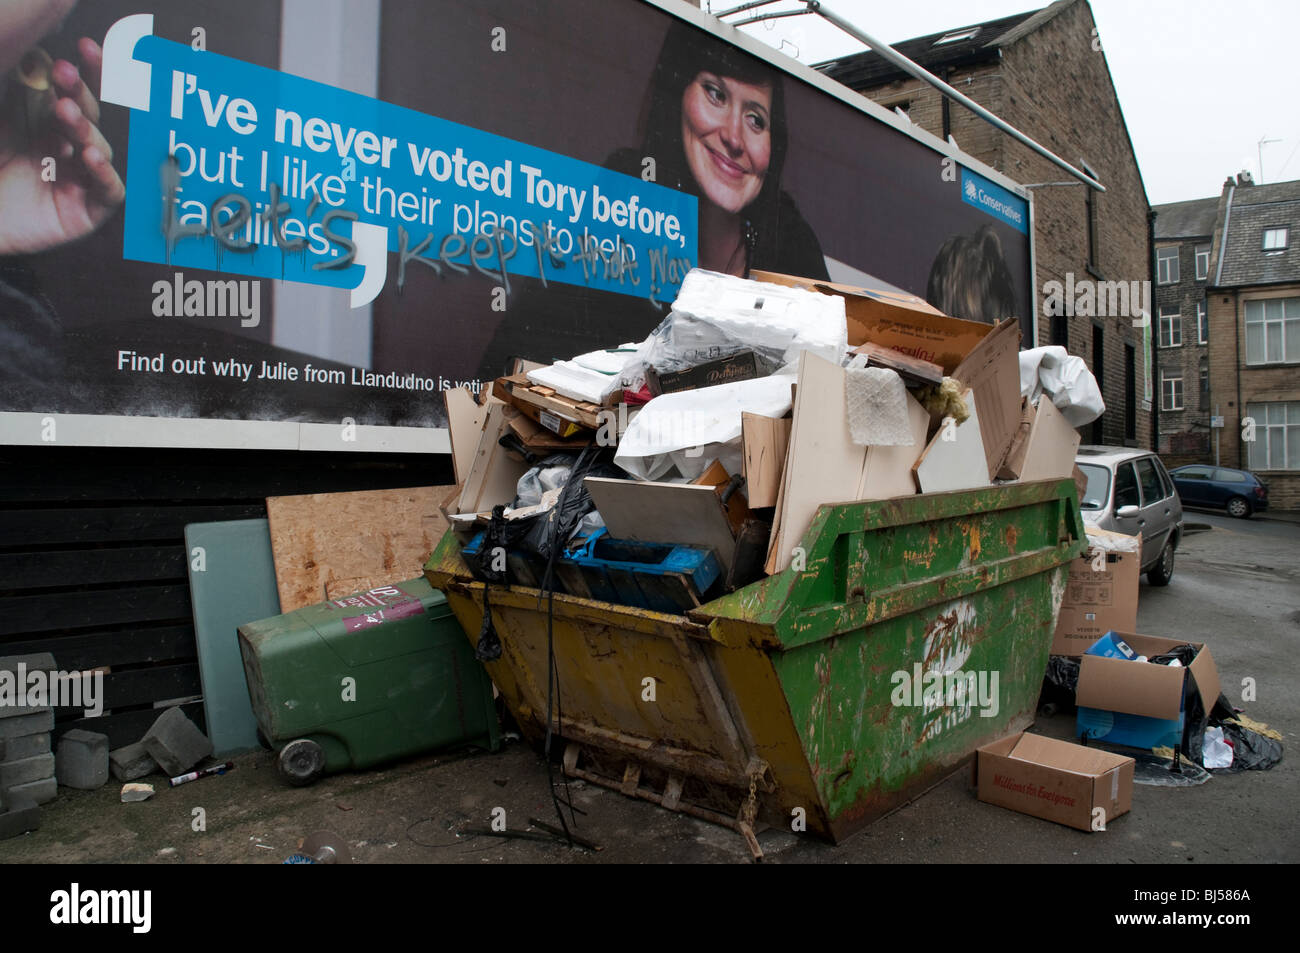 Tory election poster with graffiti, strap line reads 'I've never voted tory before,' graffiti reads - Stock Image